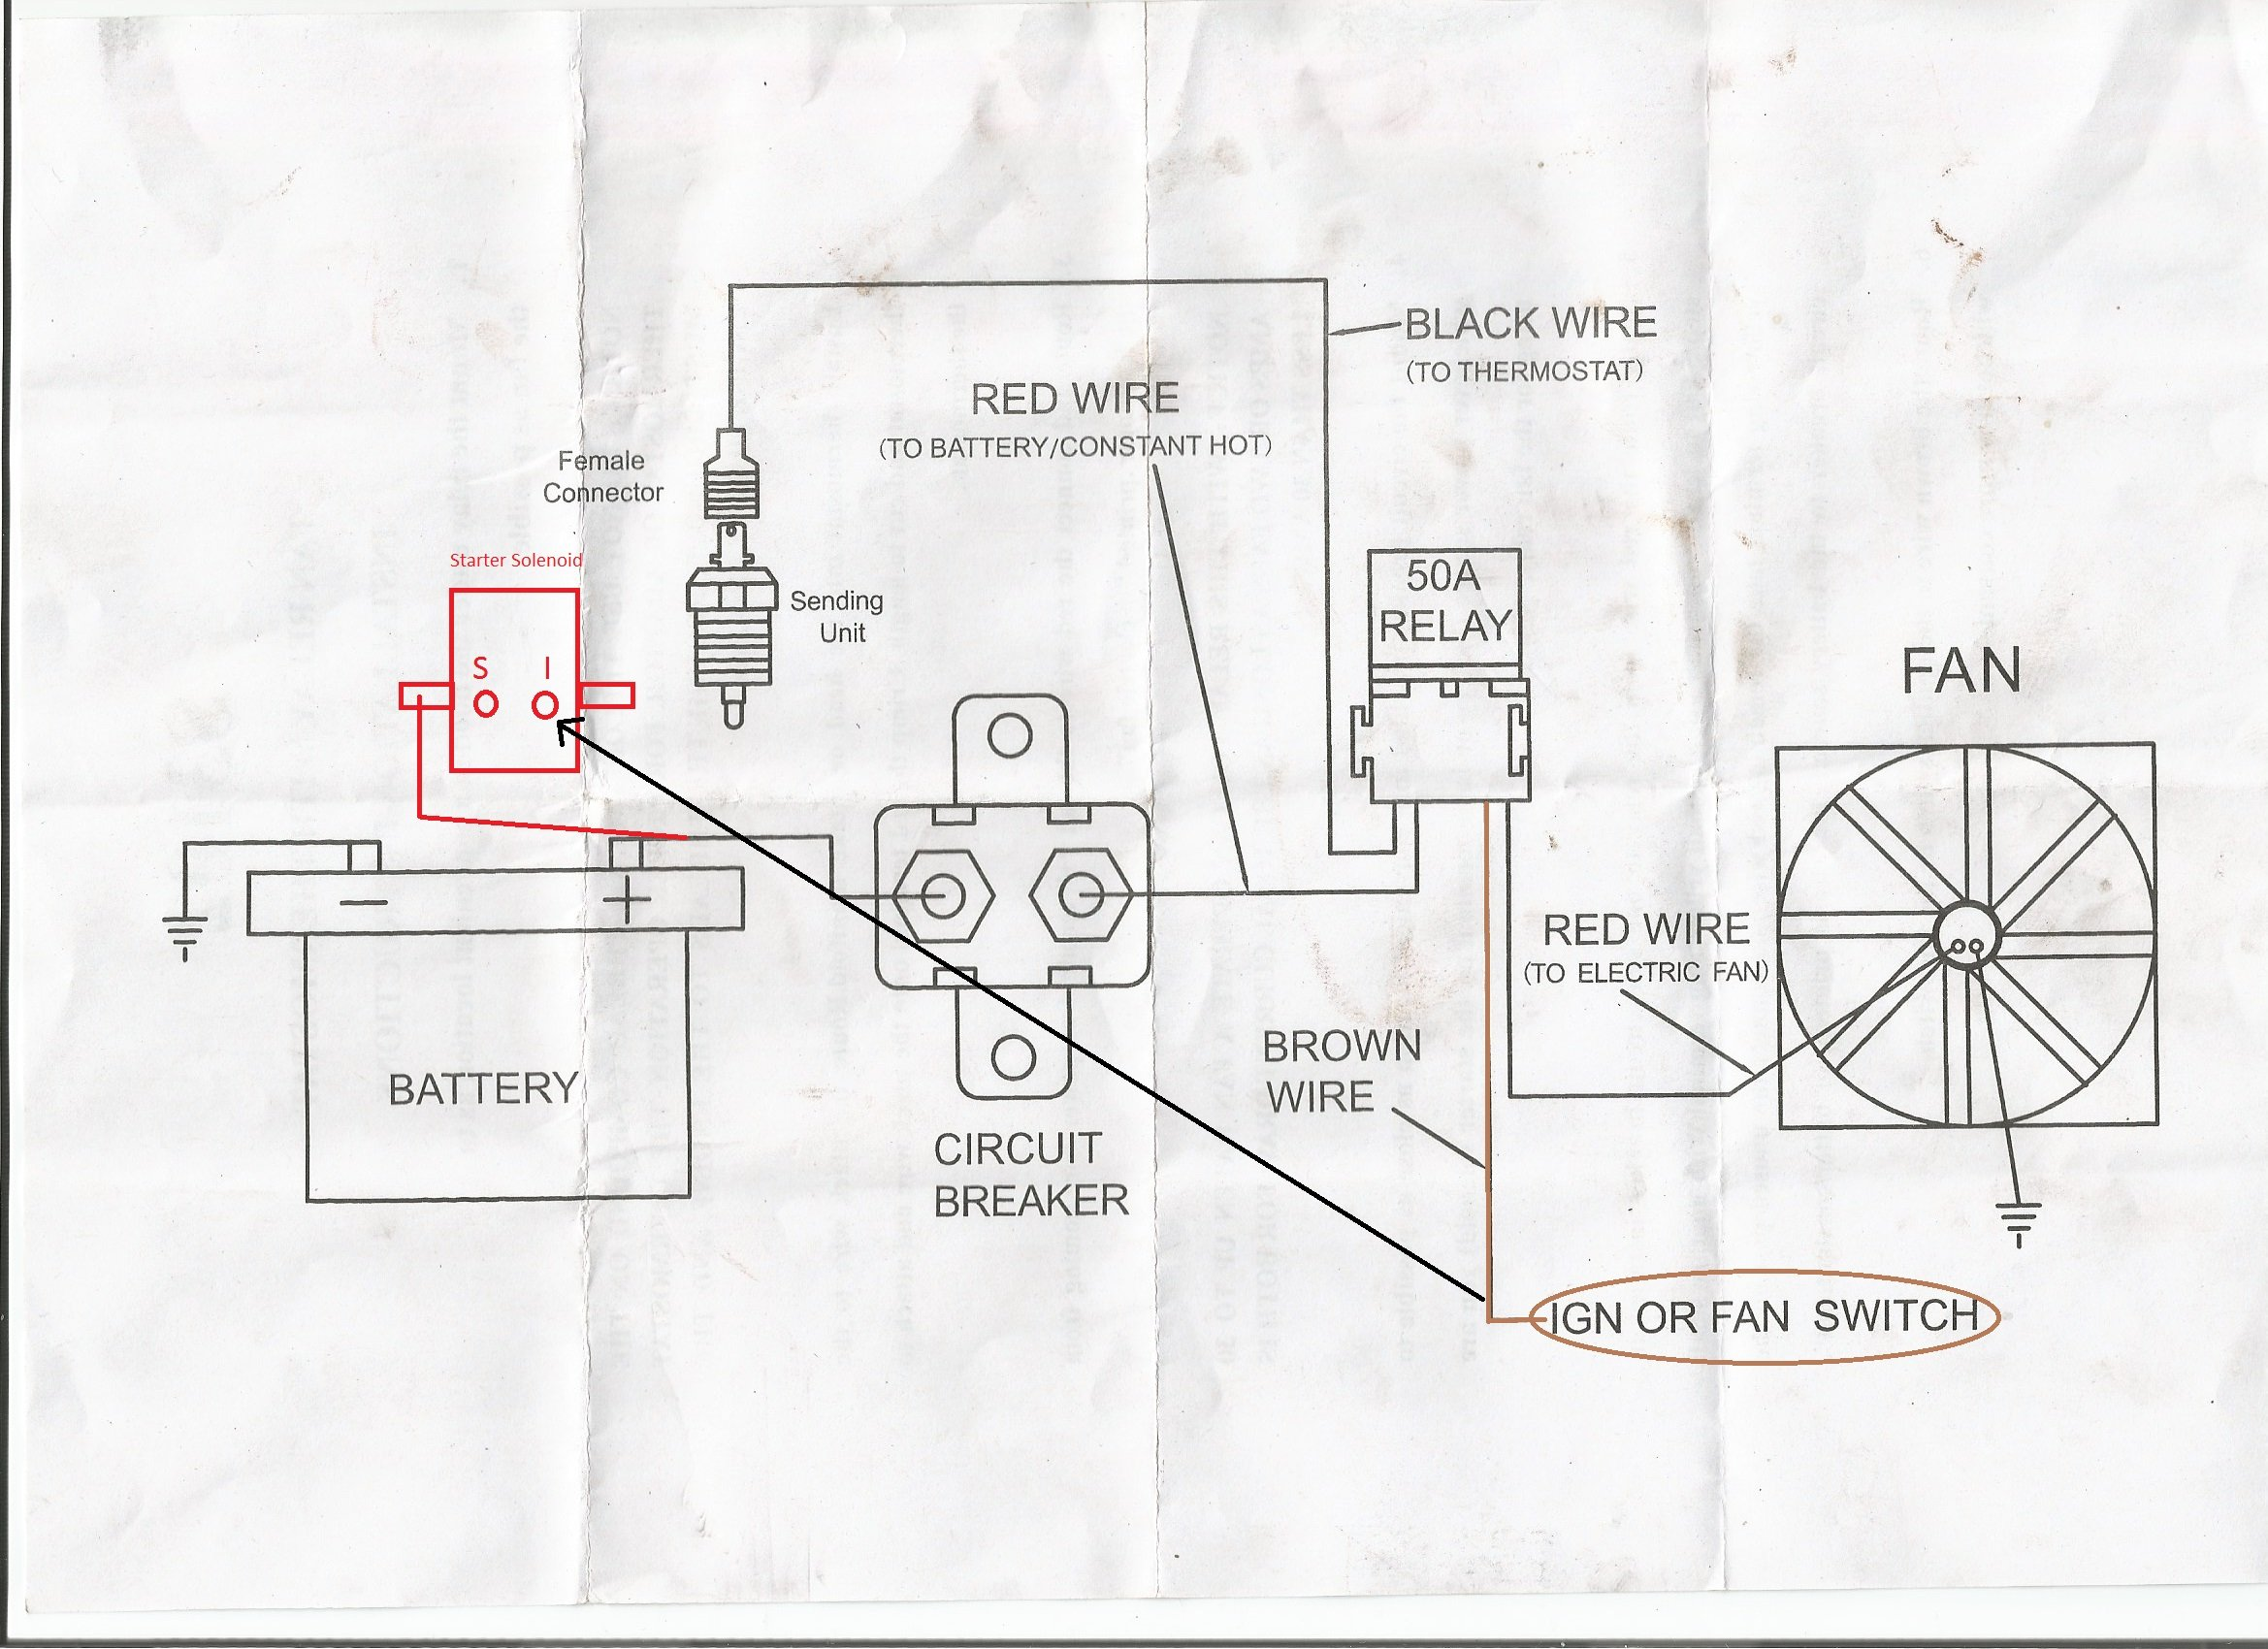 unit relay wiring diagram